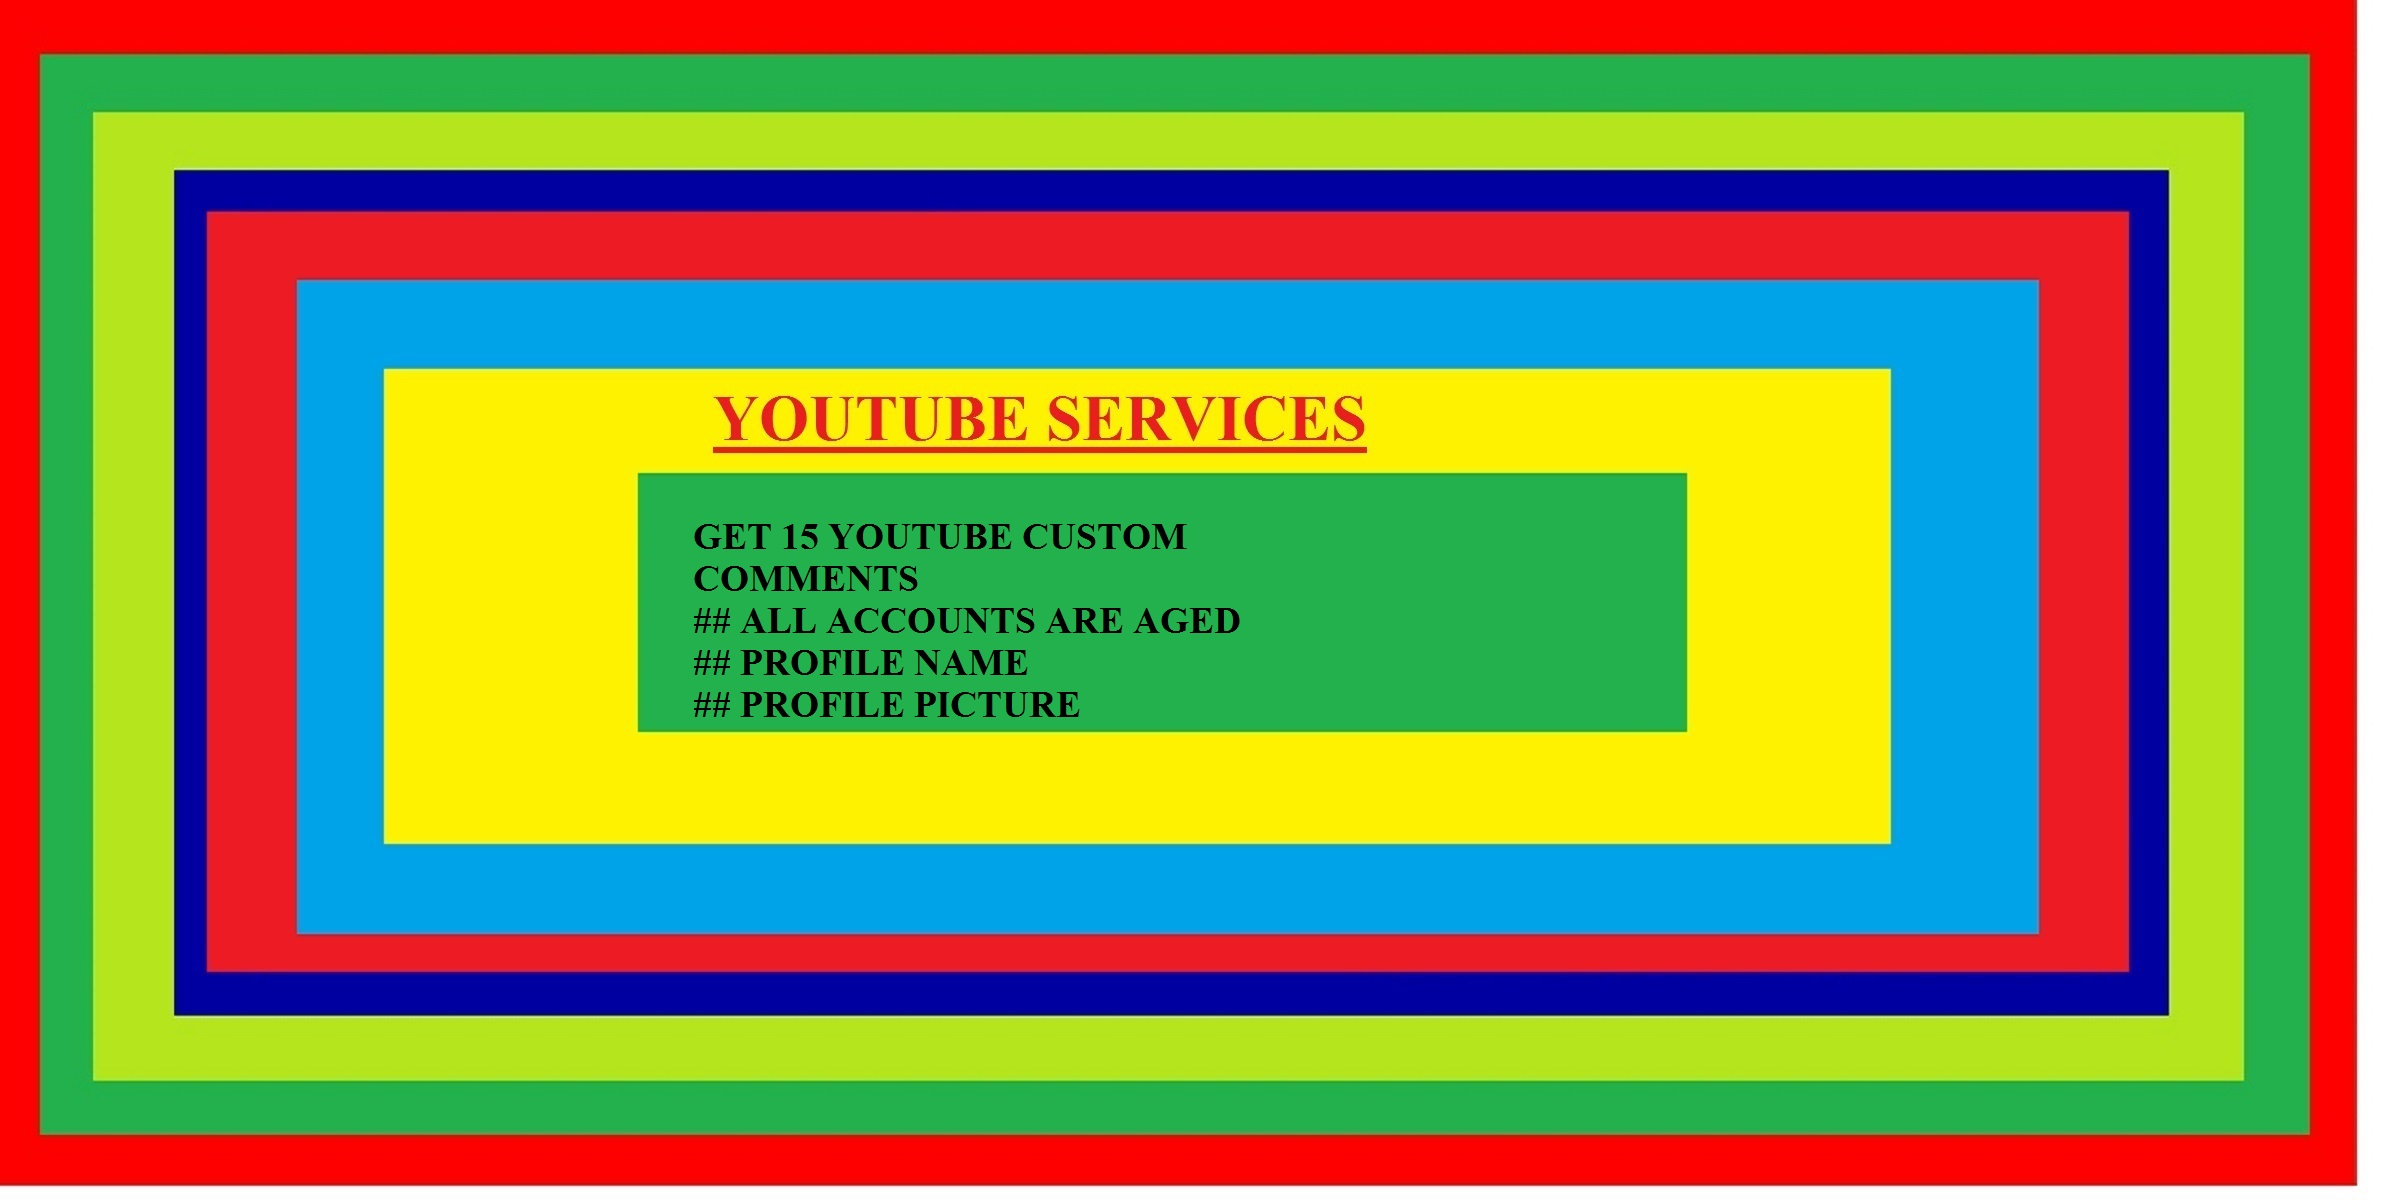 GET 20 YOUTUBE CUSTOM COMMENTS or 100 REAL YOUTUBE LIKES OR 1000 YOUTUBE VIEWS  OR 25  REAL YOUTUBE SUBSCRIBERS  OR 10 LIKES ON YOUTUBE COMMENTS